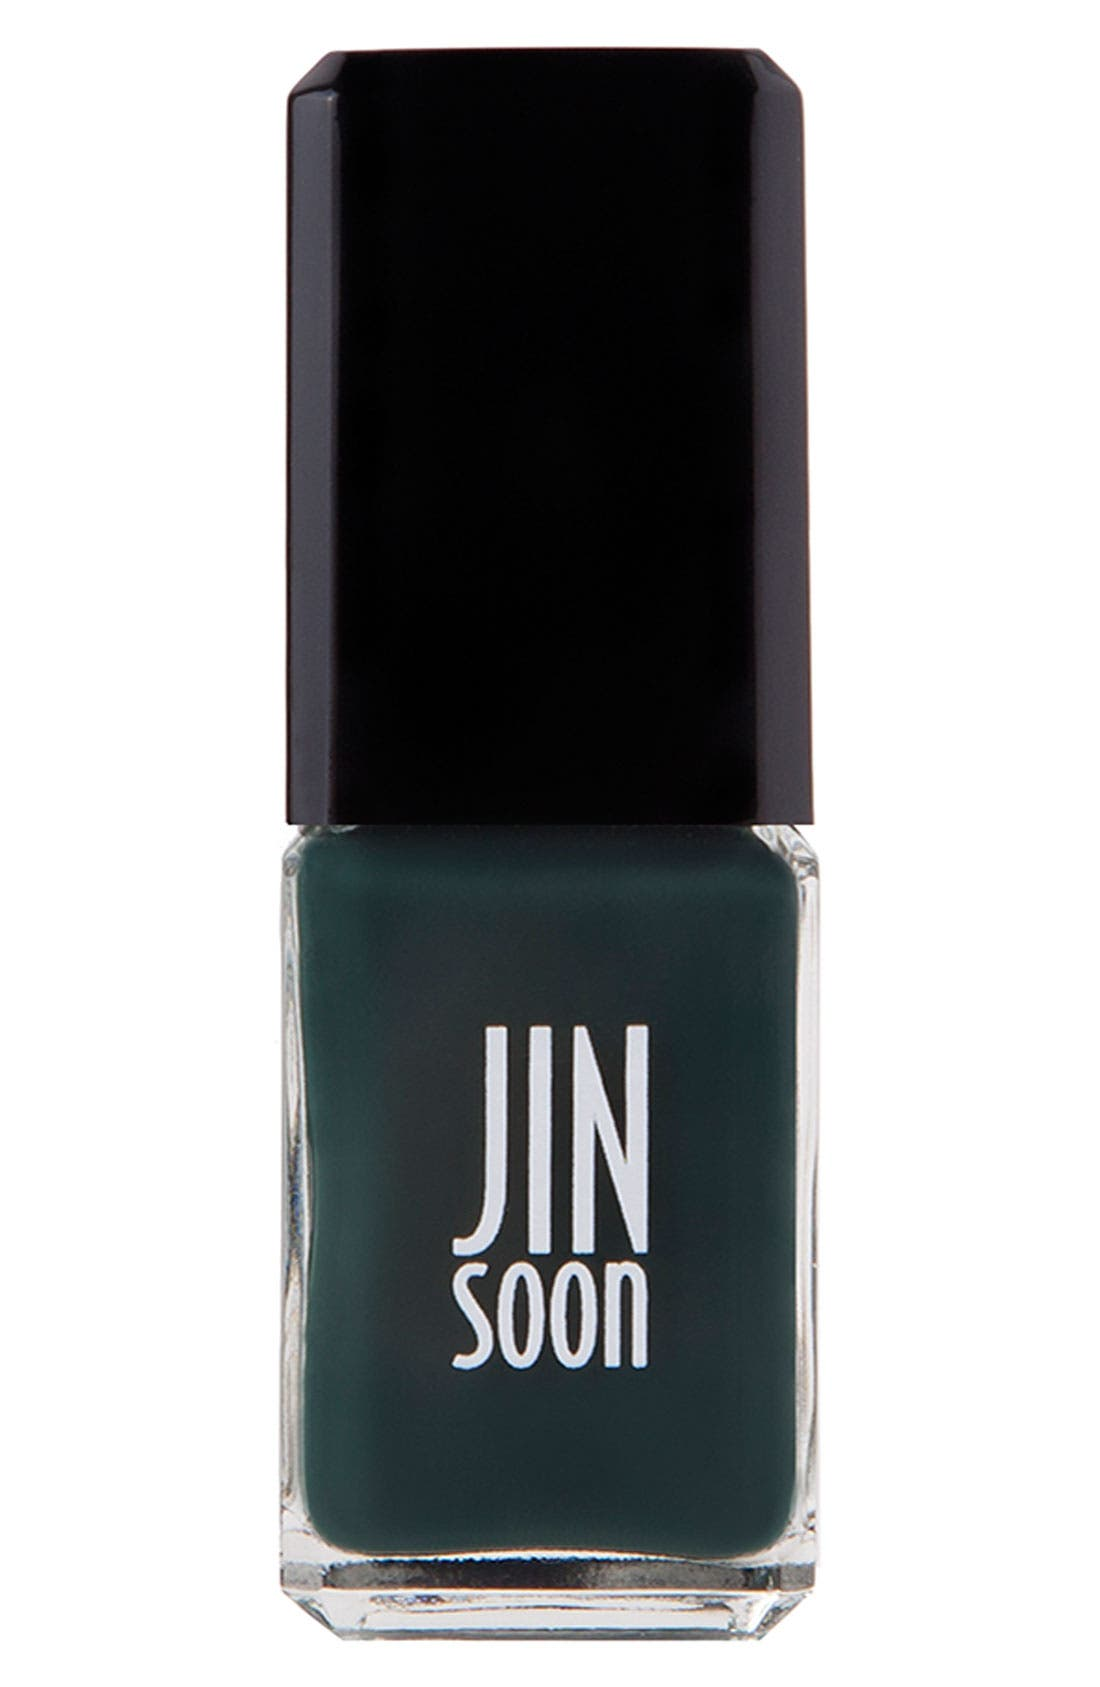 JINsoon 'Metaphor' Nail Lacquer